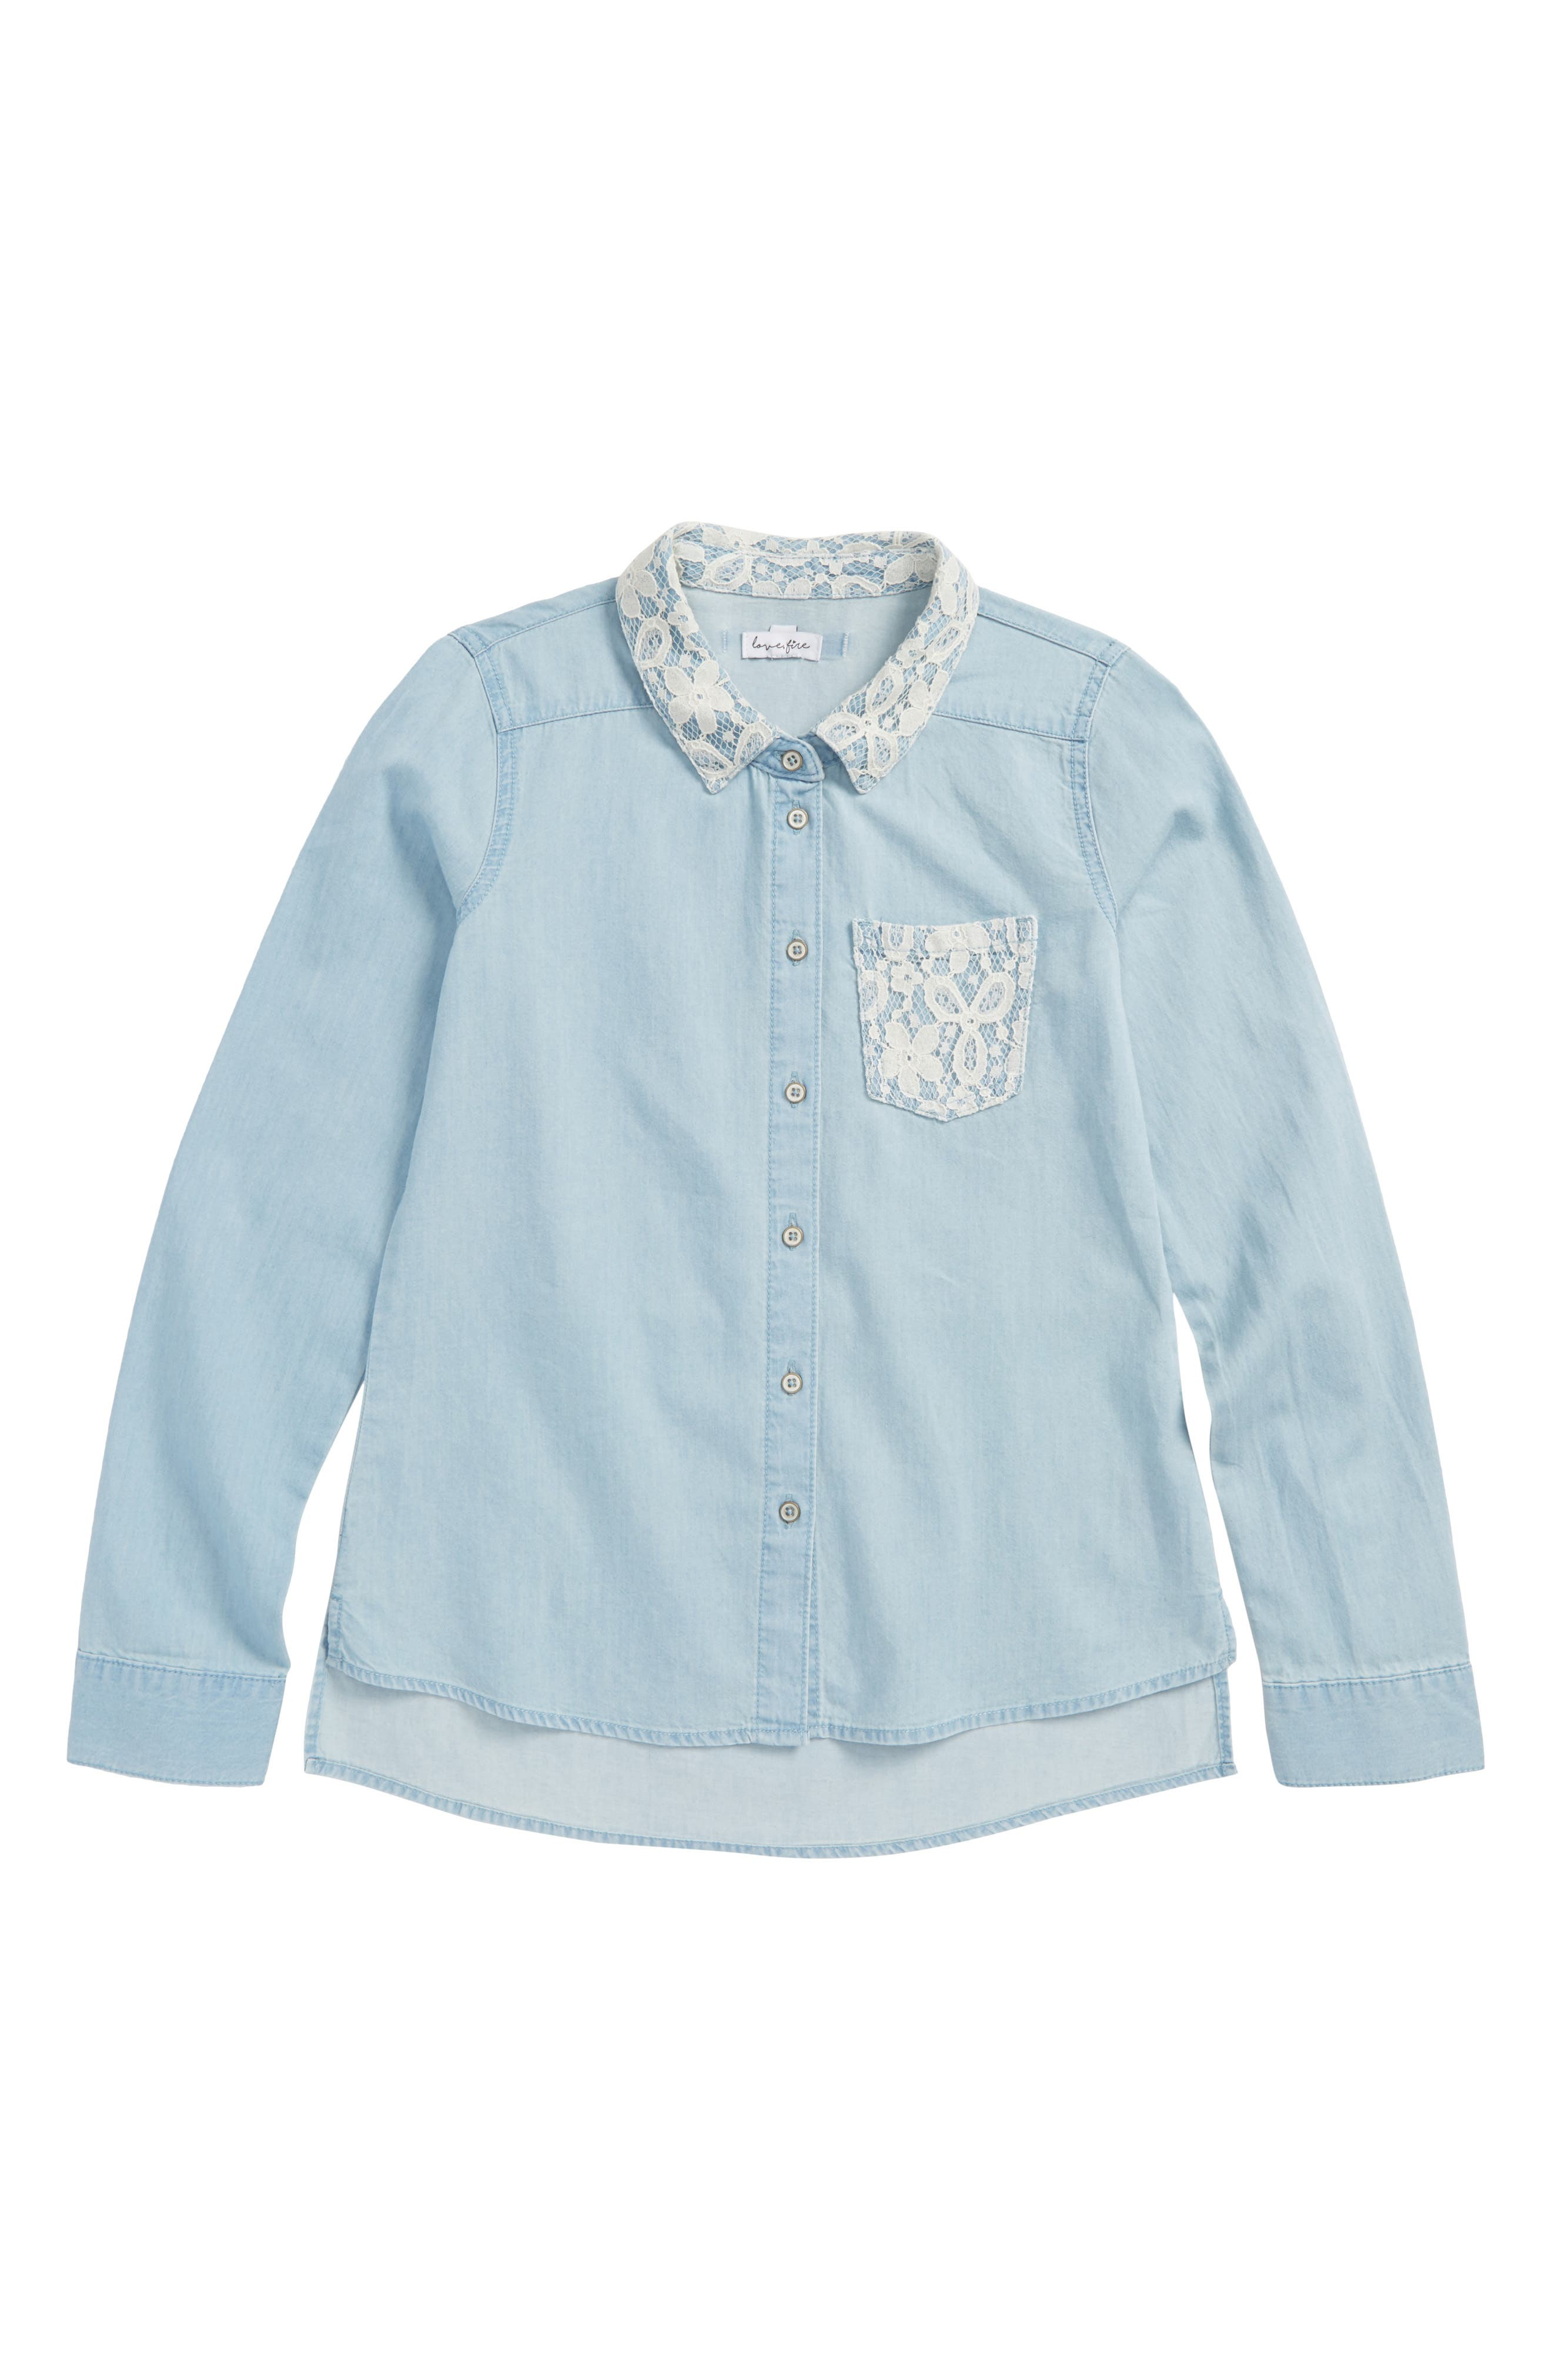 Alternate Image 1 Selected - Love, Fire Lace Trim Chambray Shirt (Big Girls)